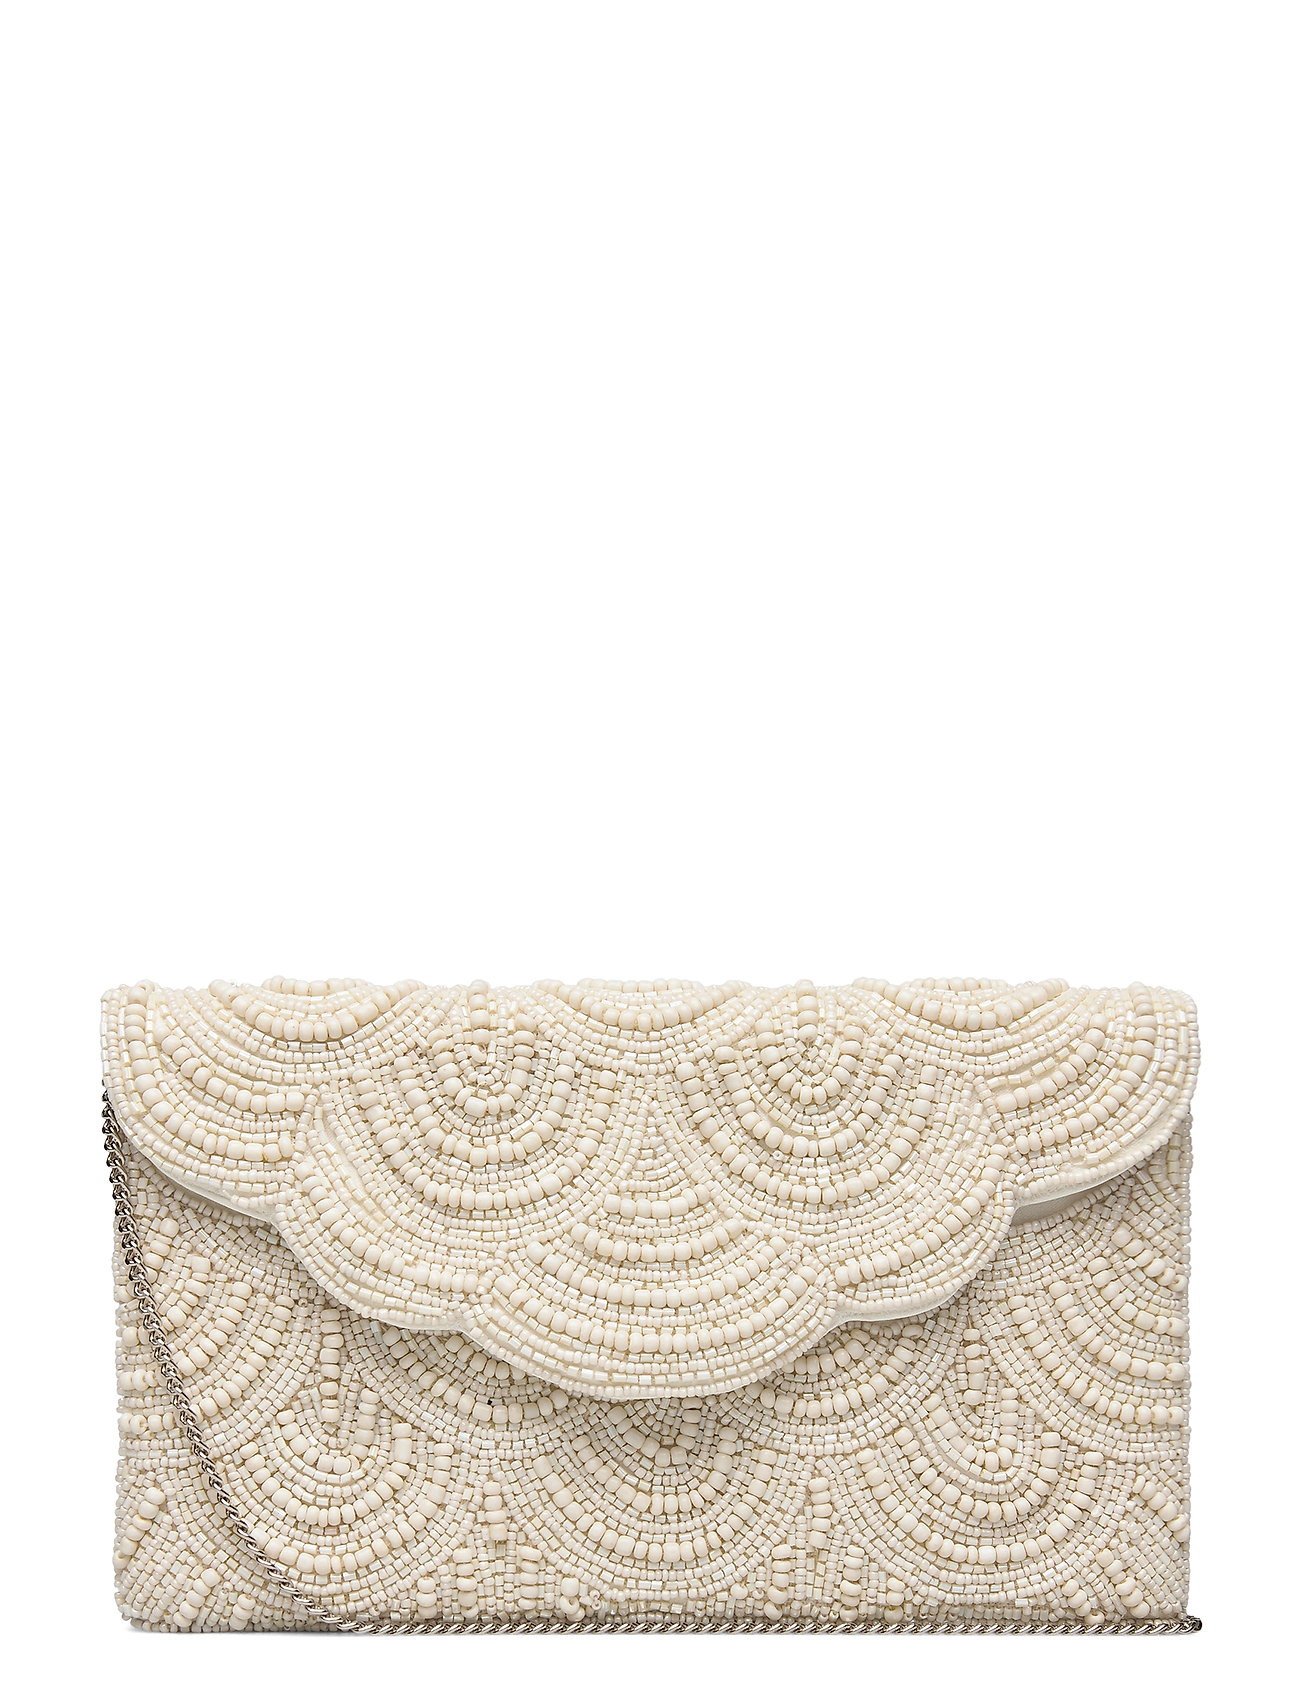 Image of Femme Beaded Clutch Creme Bags Clutches Creme PIPOL'S BAZAAR (3439404483)